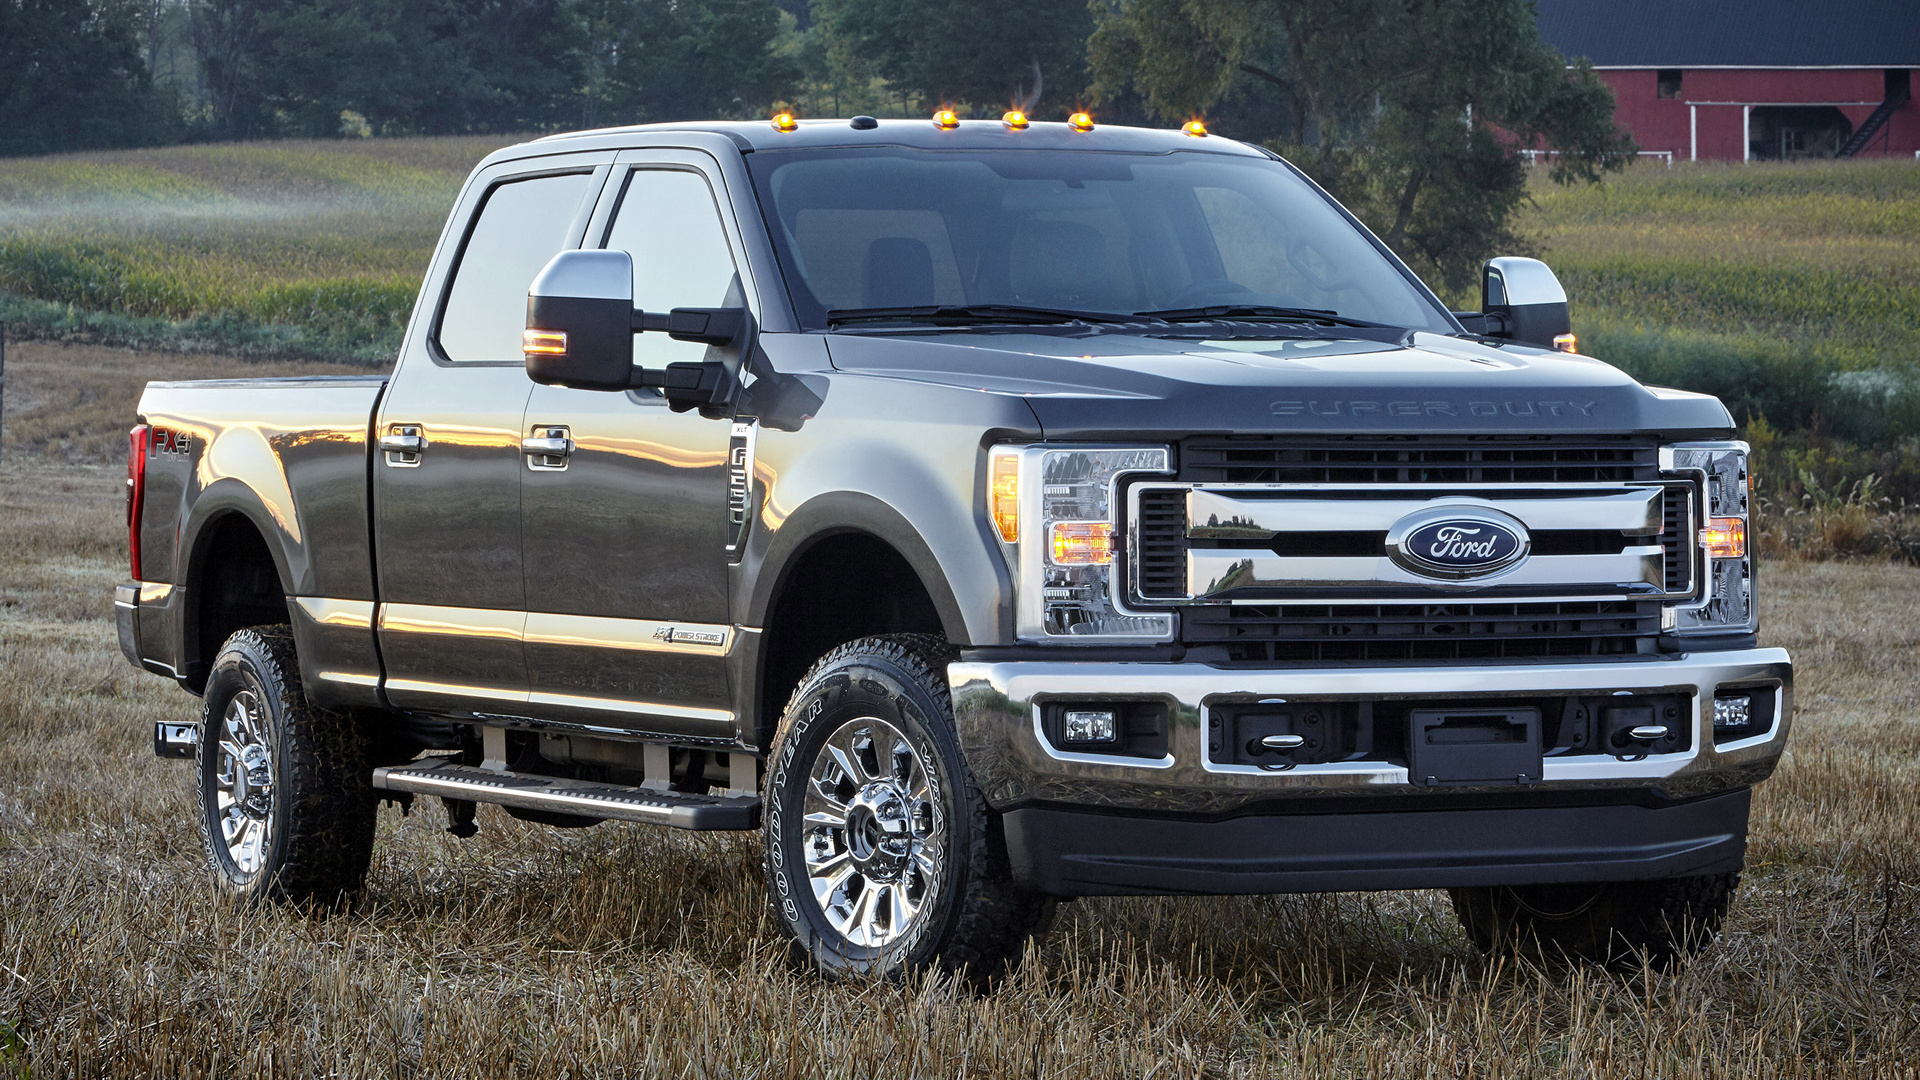 2017 F 350 Towing Capacity >> Ford F-250 XLT FX4 Crew Cab (2017) Wallpapers and HD Images - Car Pixel